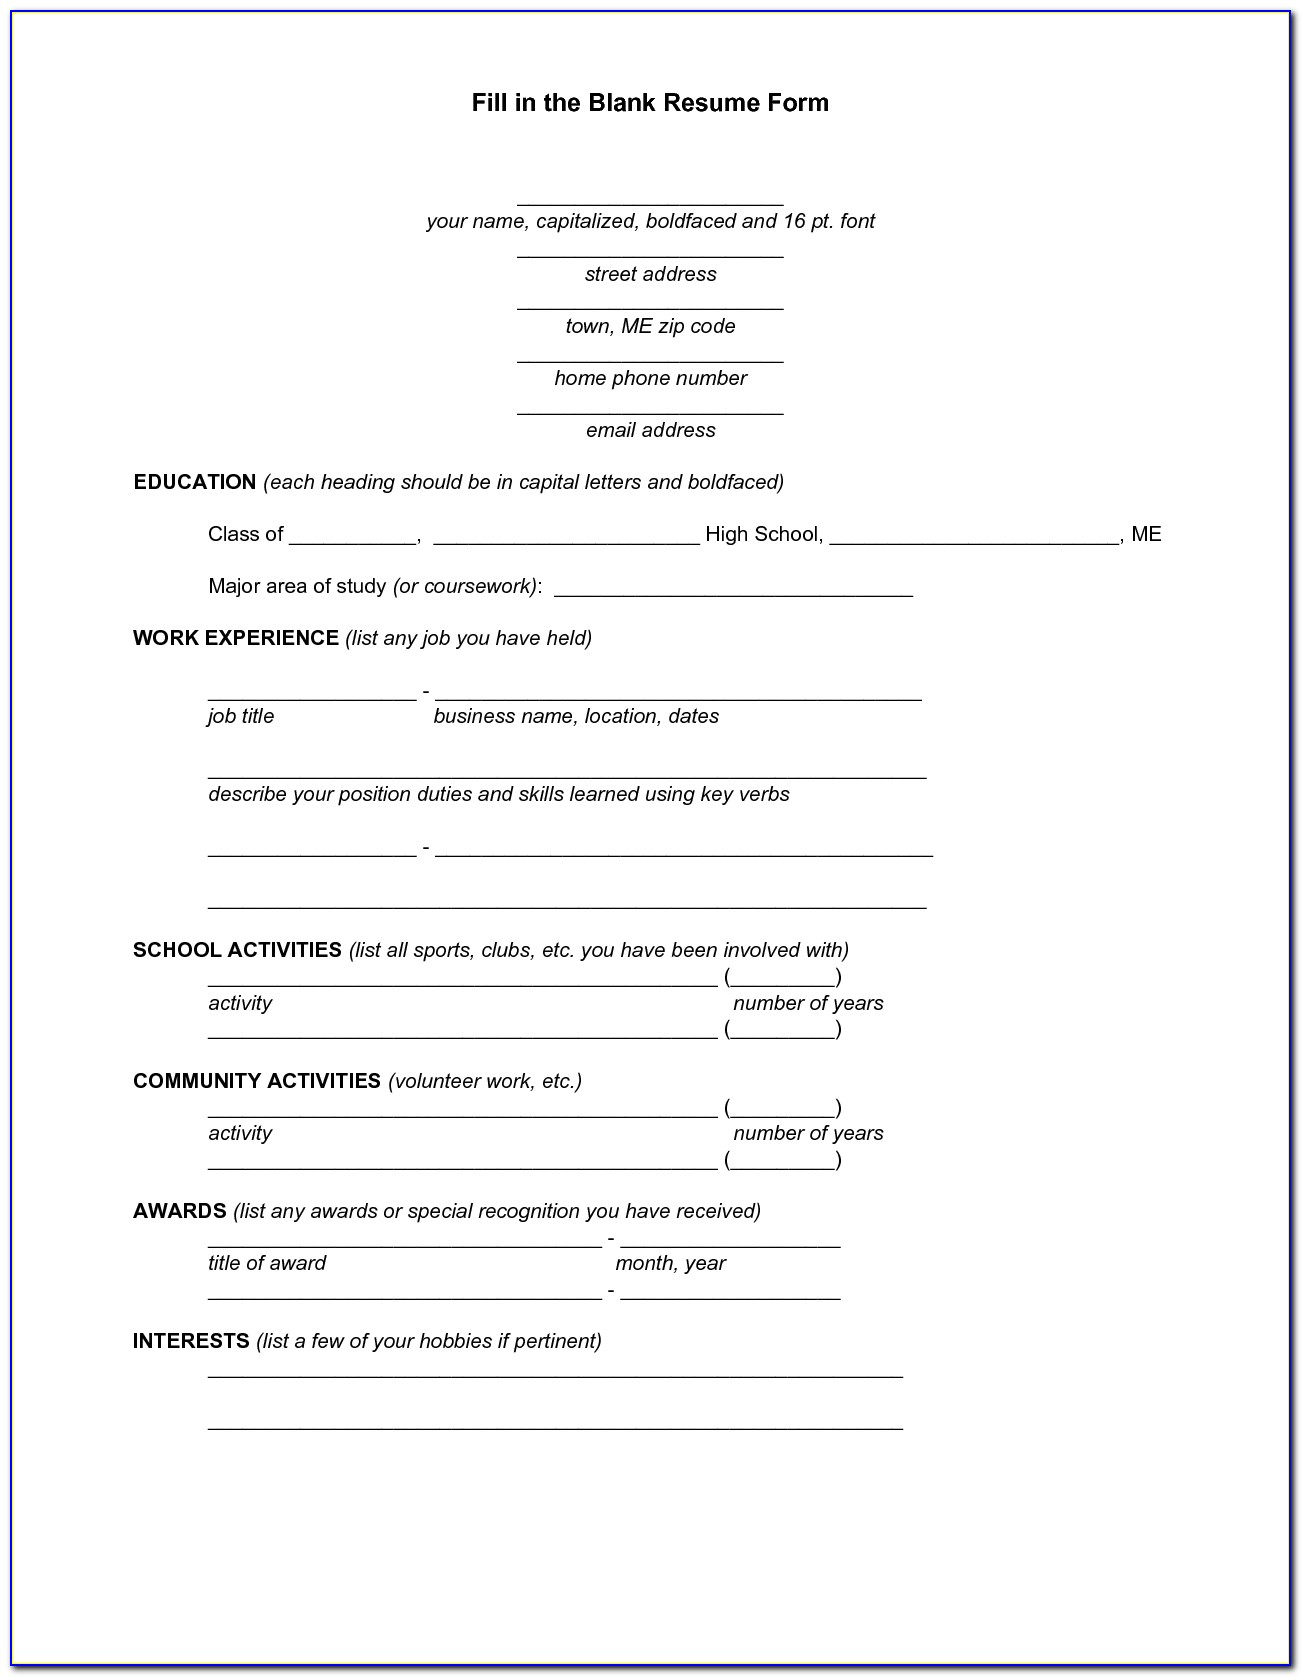 Resume Fill In The Blank